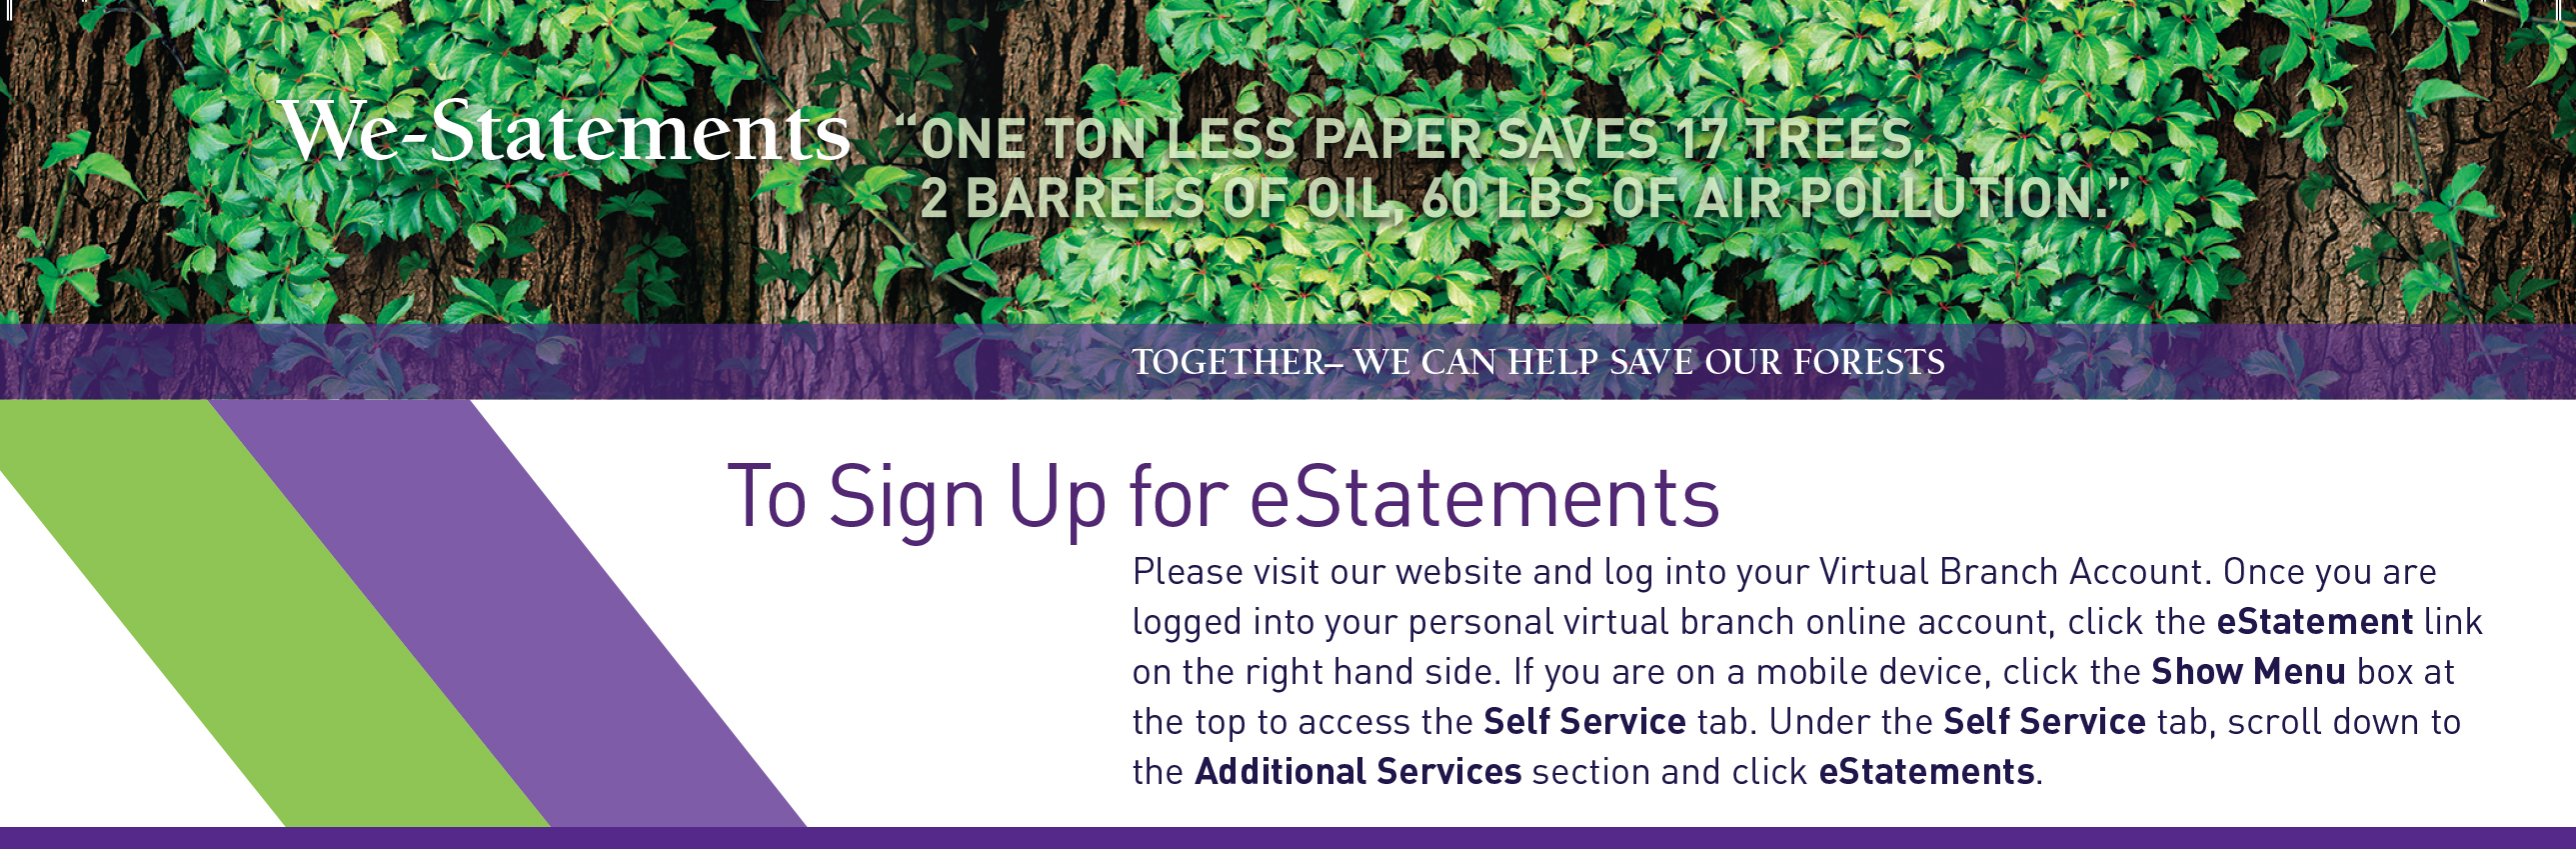 Sign up for eStatements